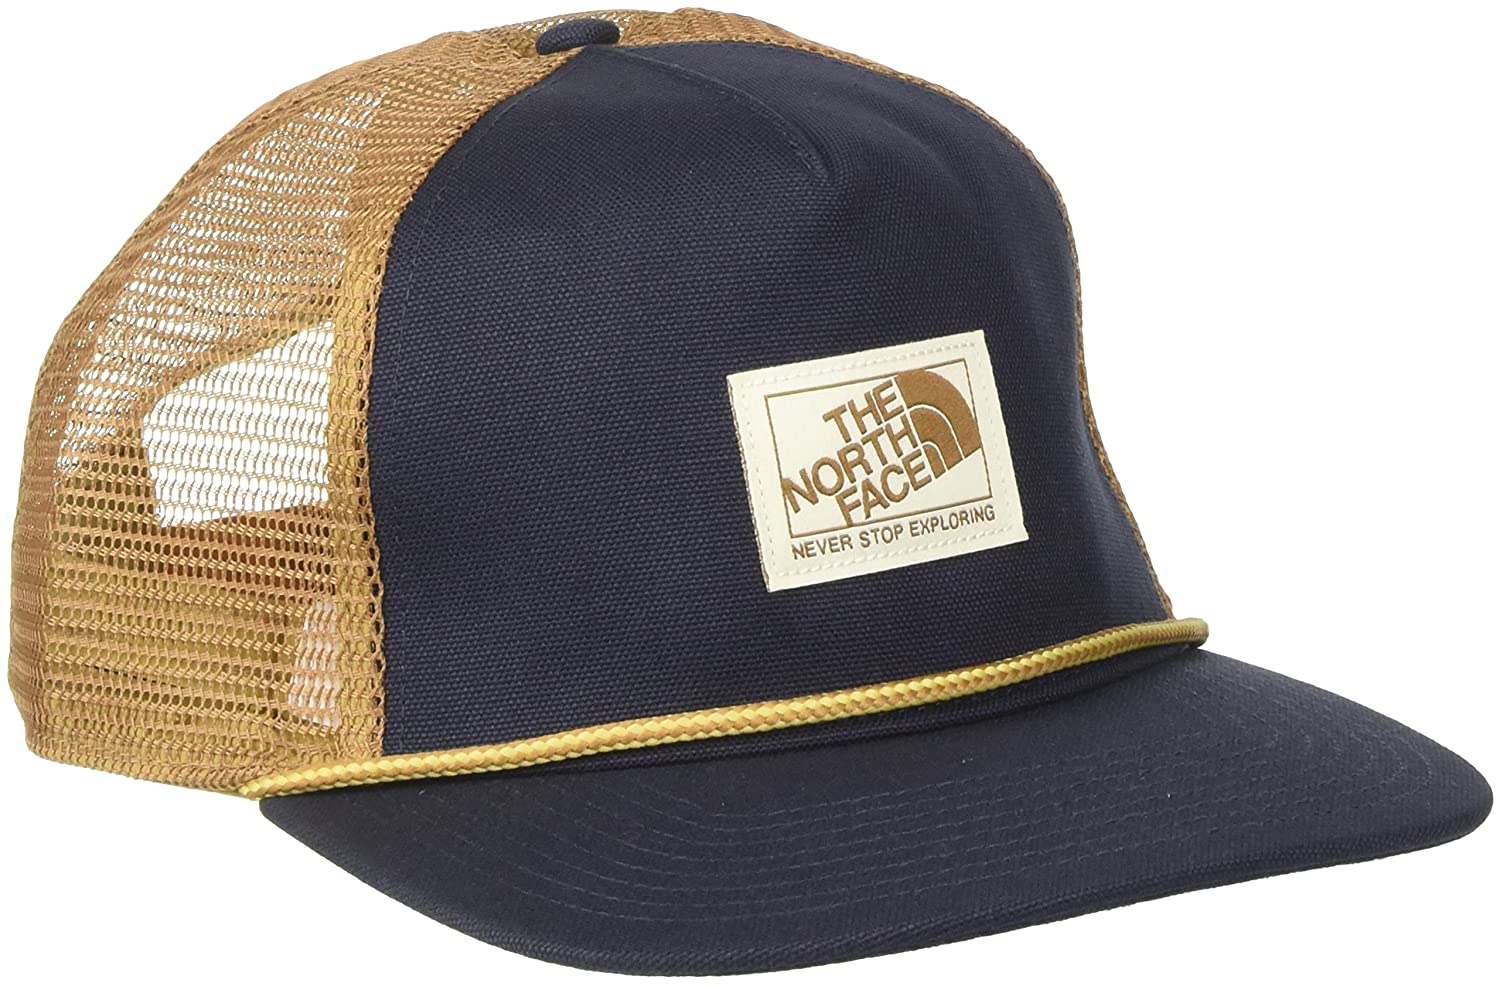 THE NORTH FACE Muddier Trucker Gorra, Mujer, Negro, Talla única T93FFEZLY. OS